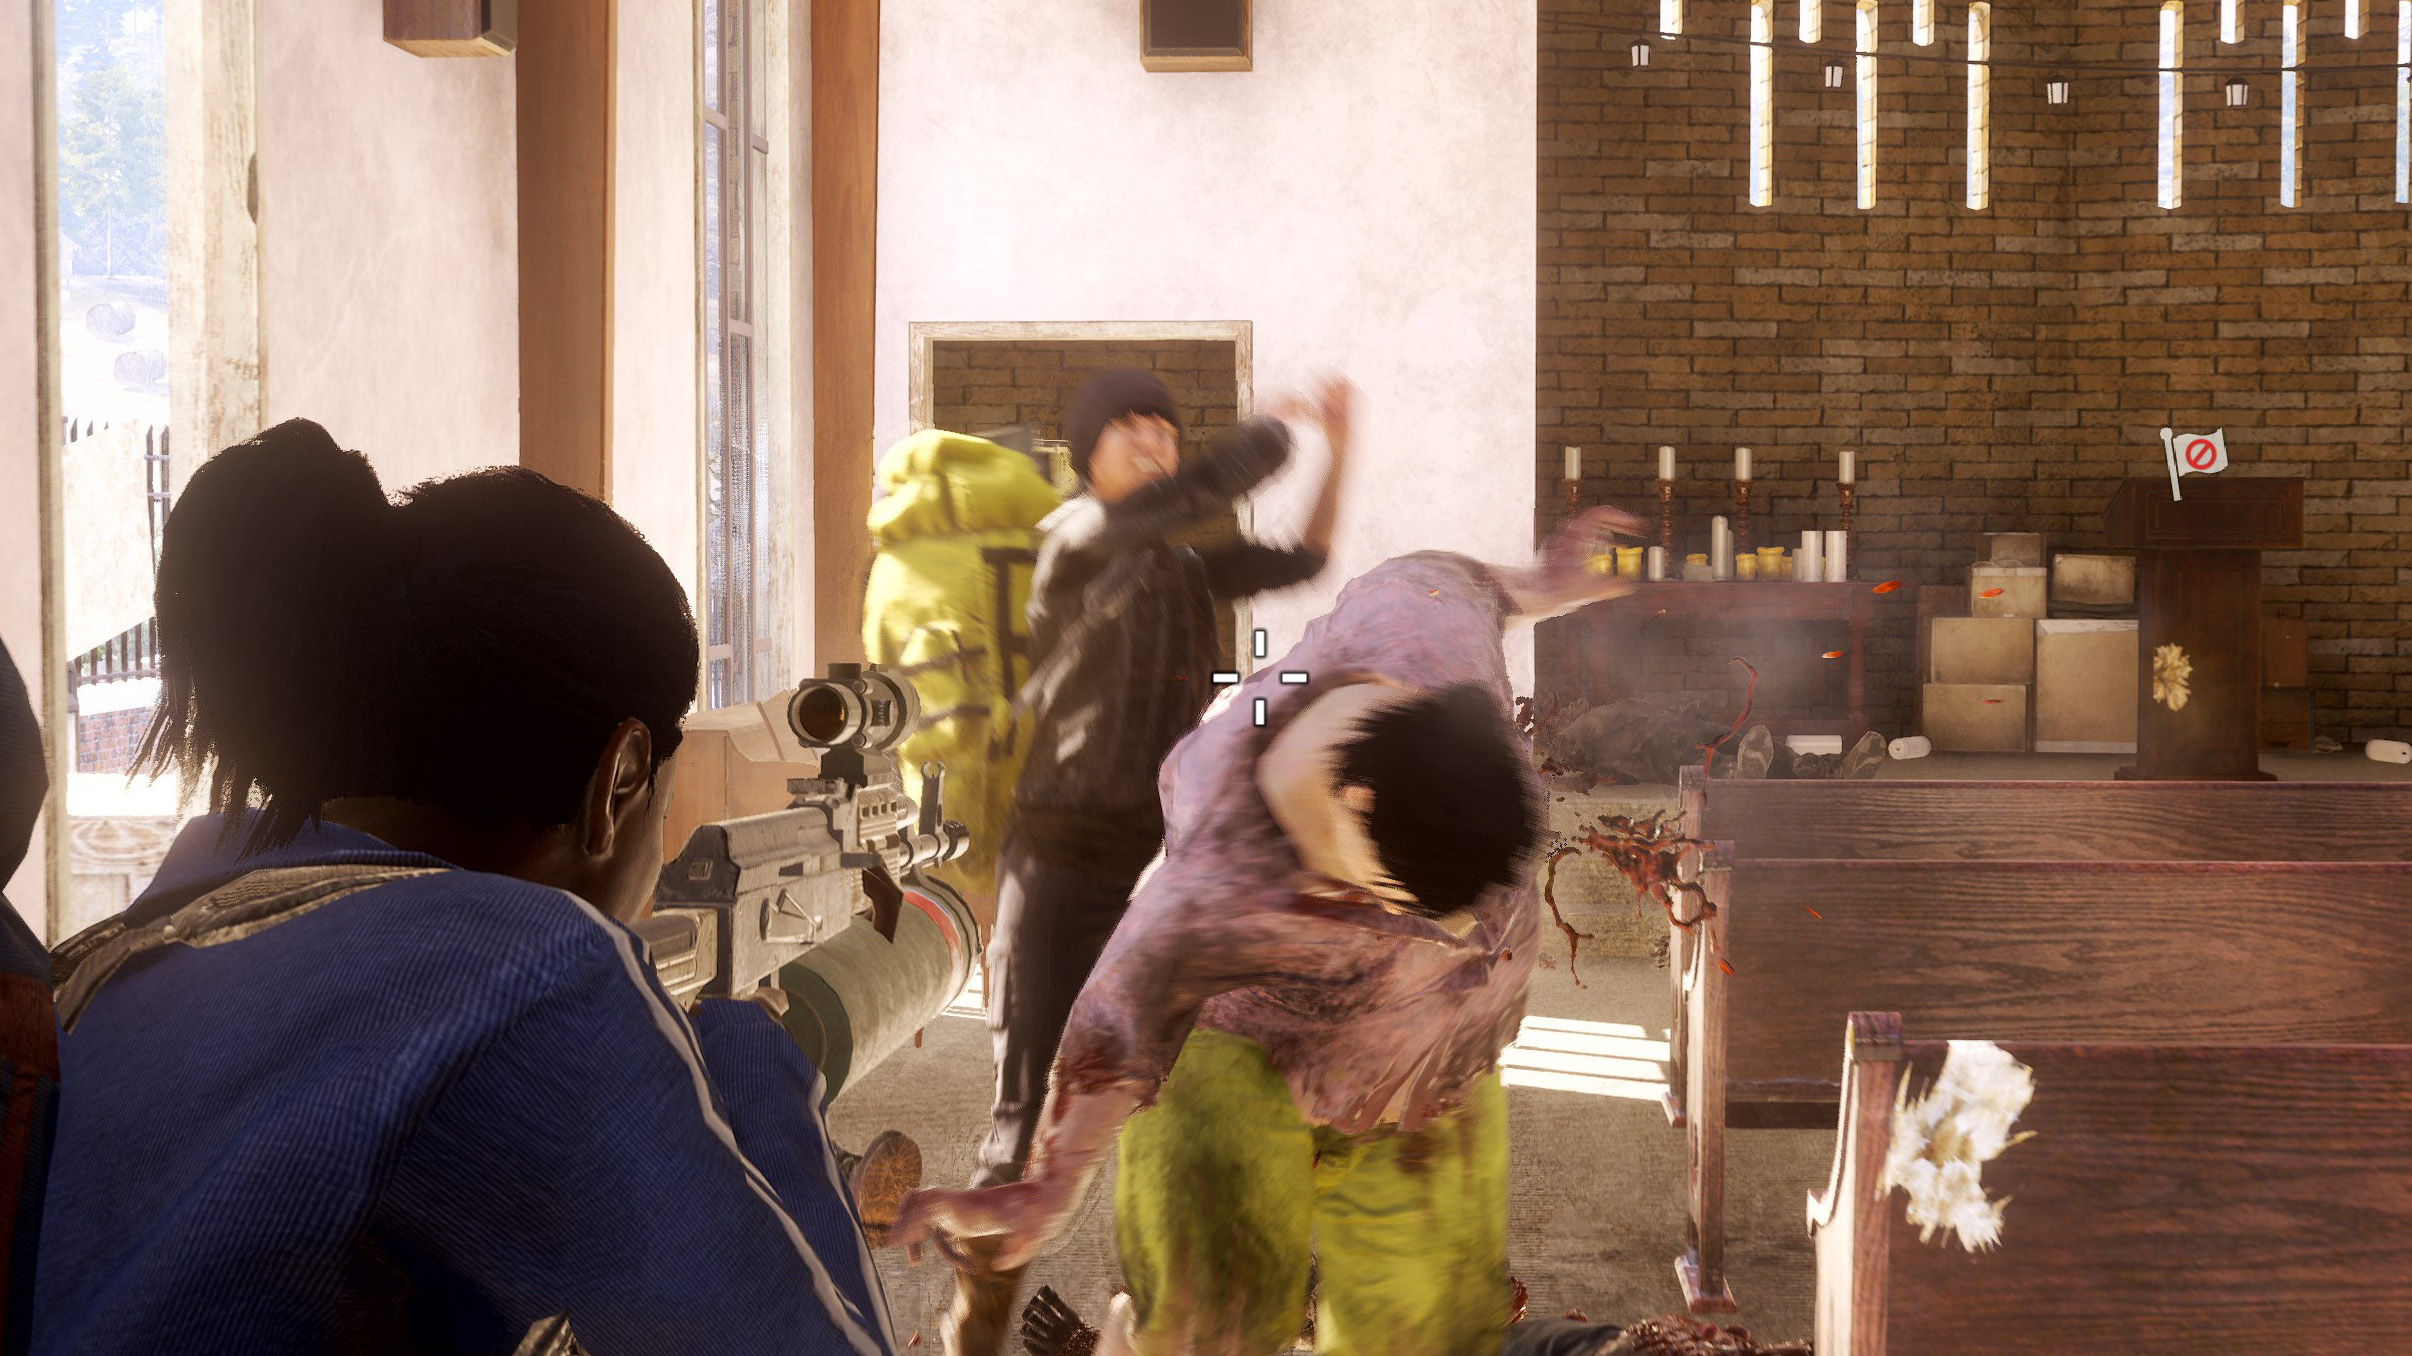 Like any great zombie movie, State of Decay 2 finds complexity in